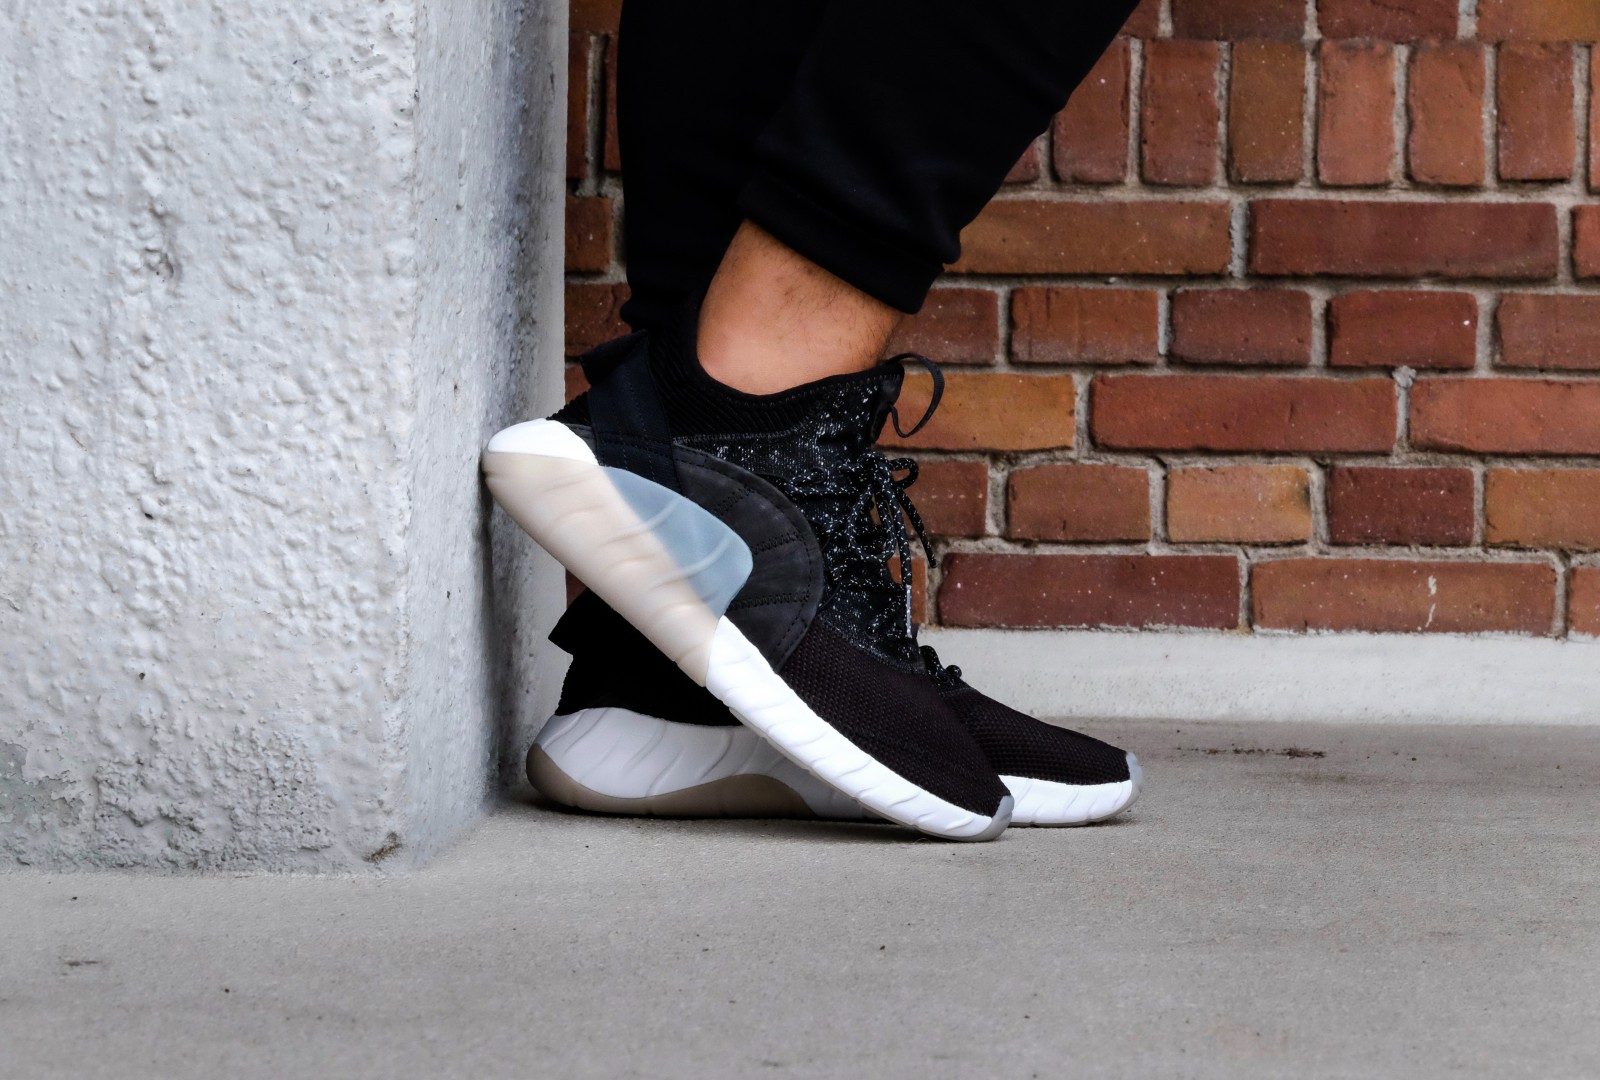 Cheap Adidas Tubular X Page 2 of 6 Cheap Tubular X